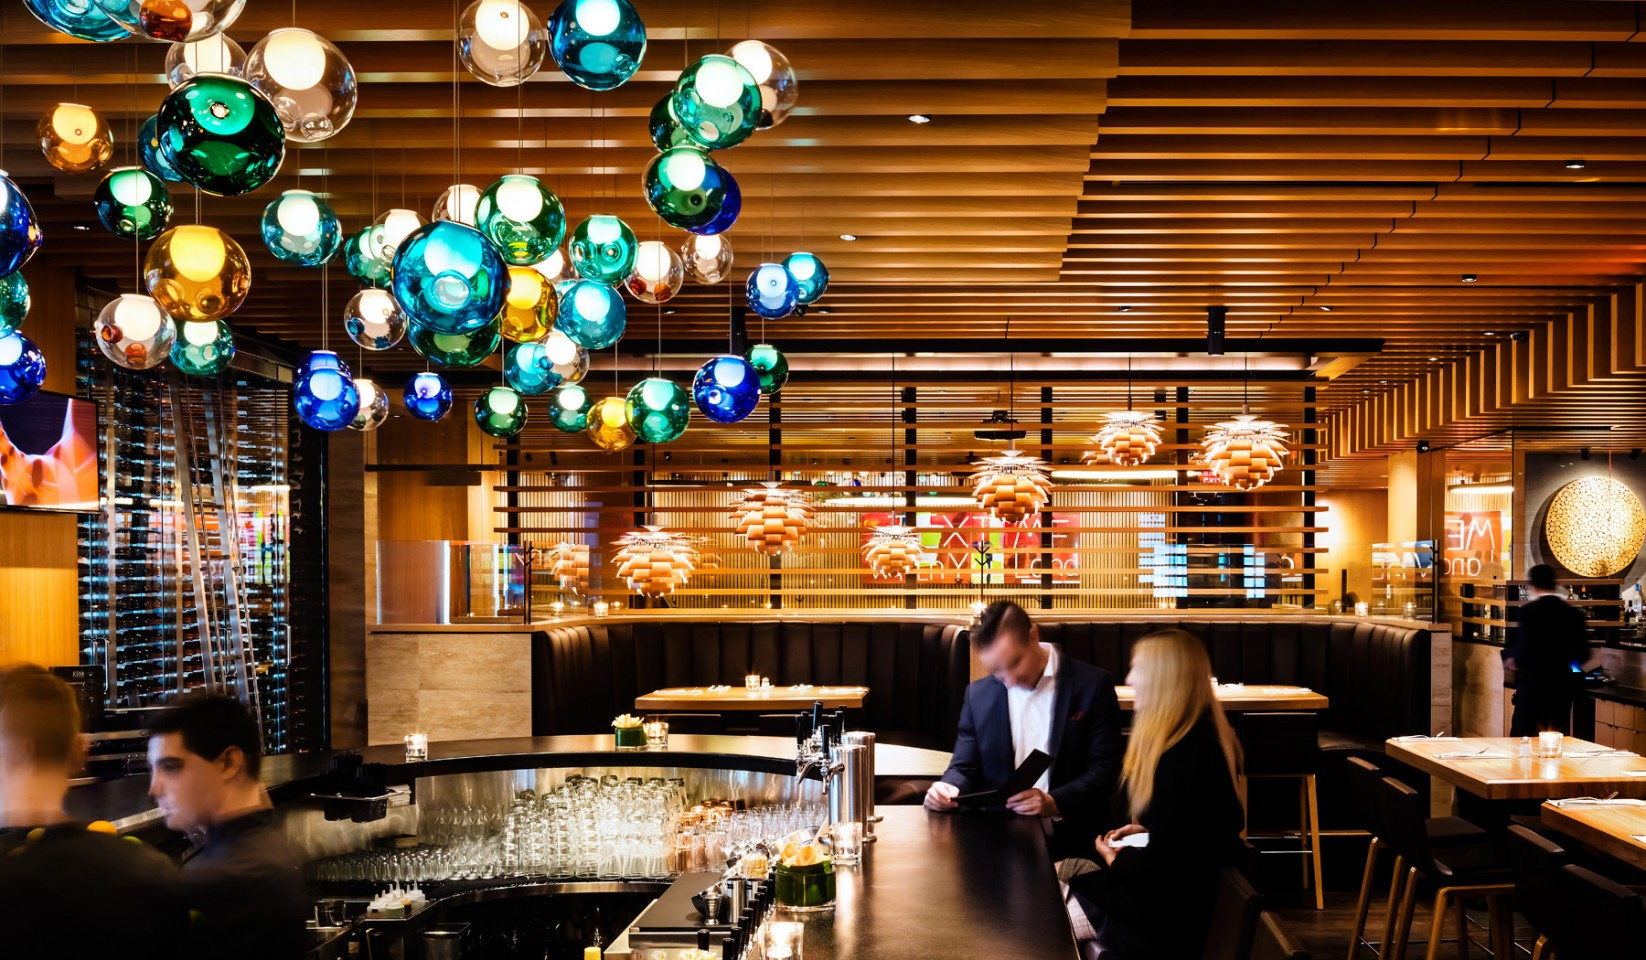 Cactus Club First Canadian Place Restaurant Toronto